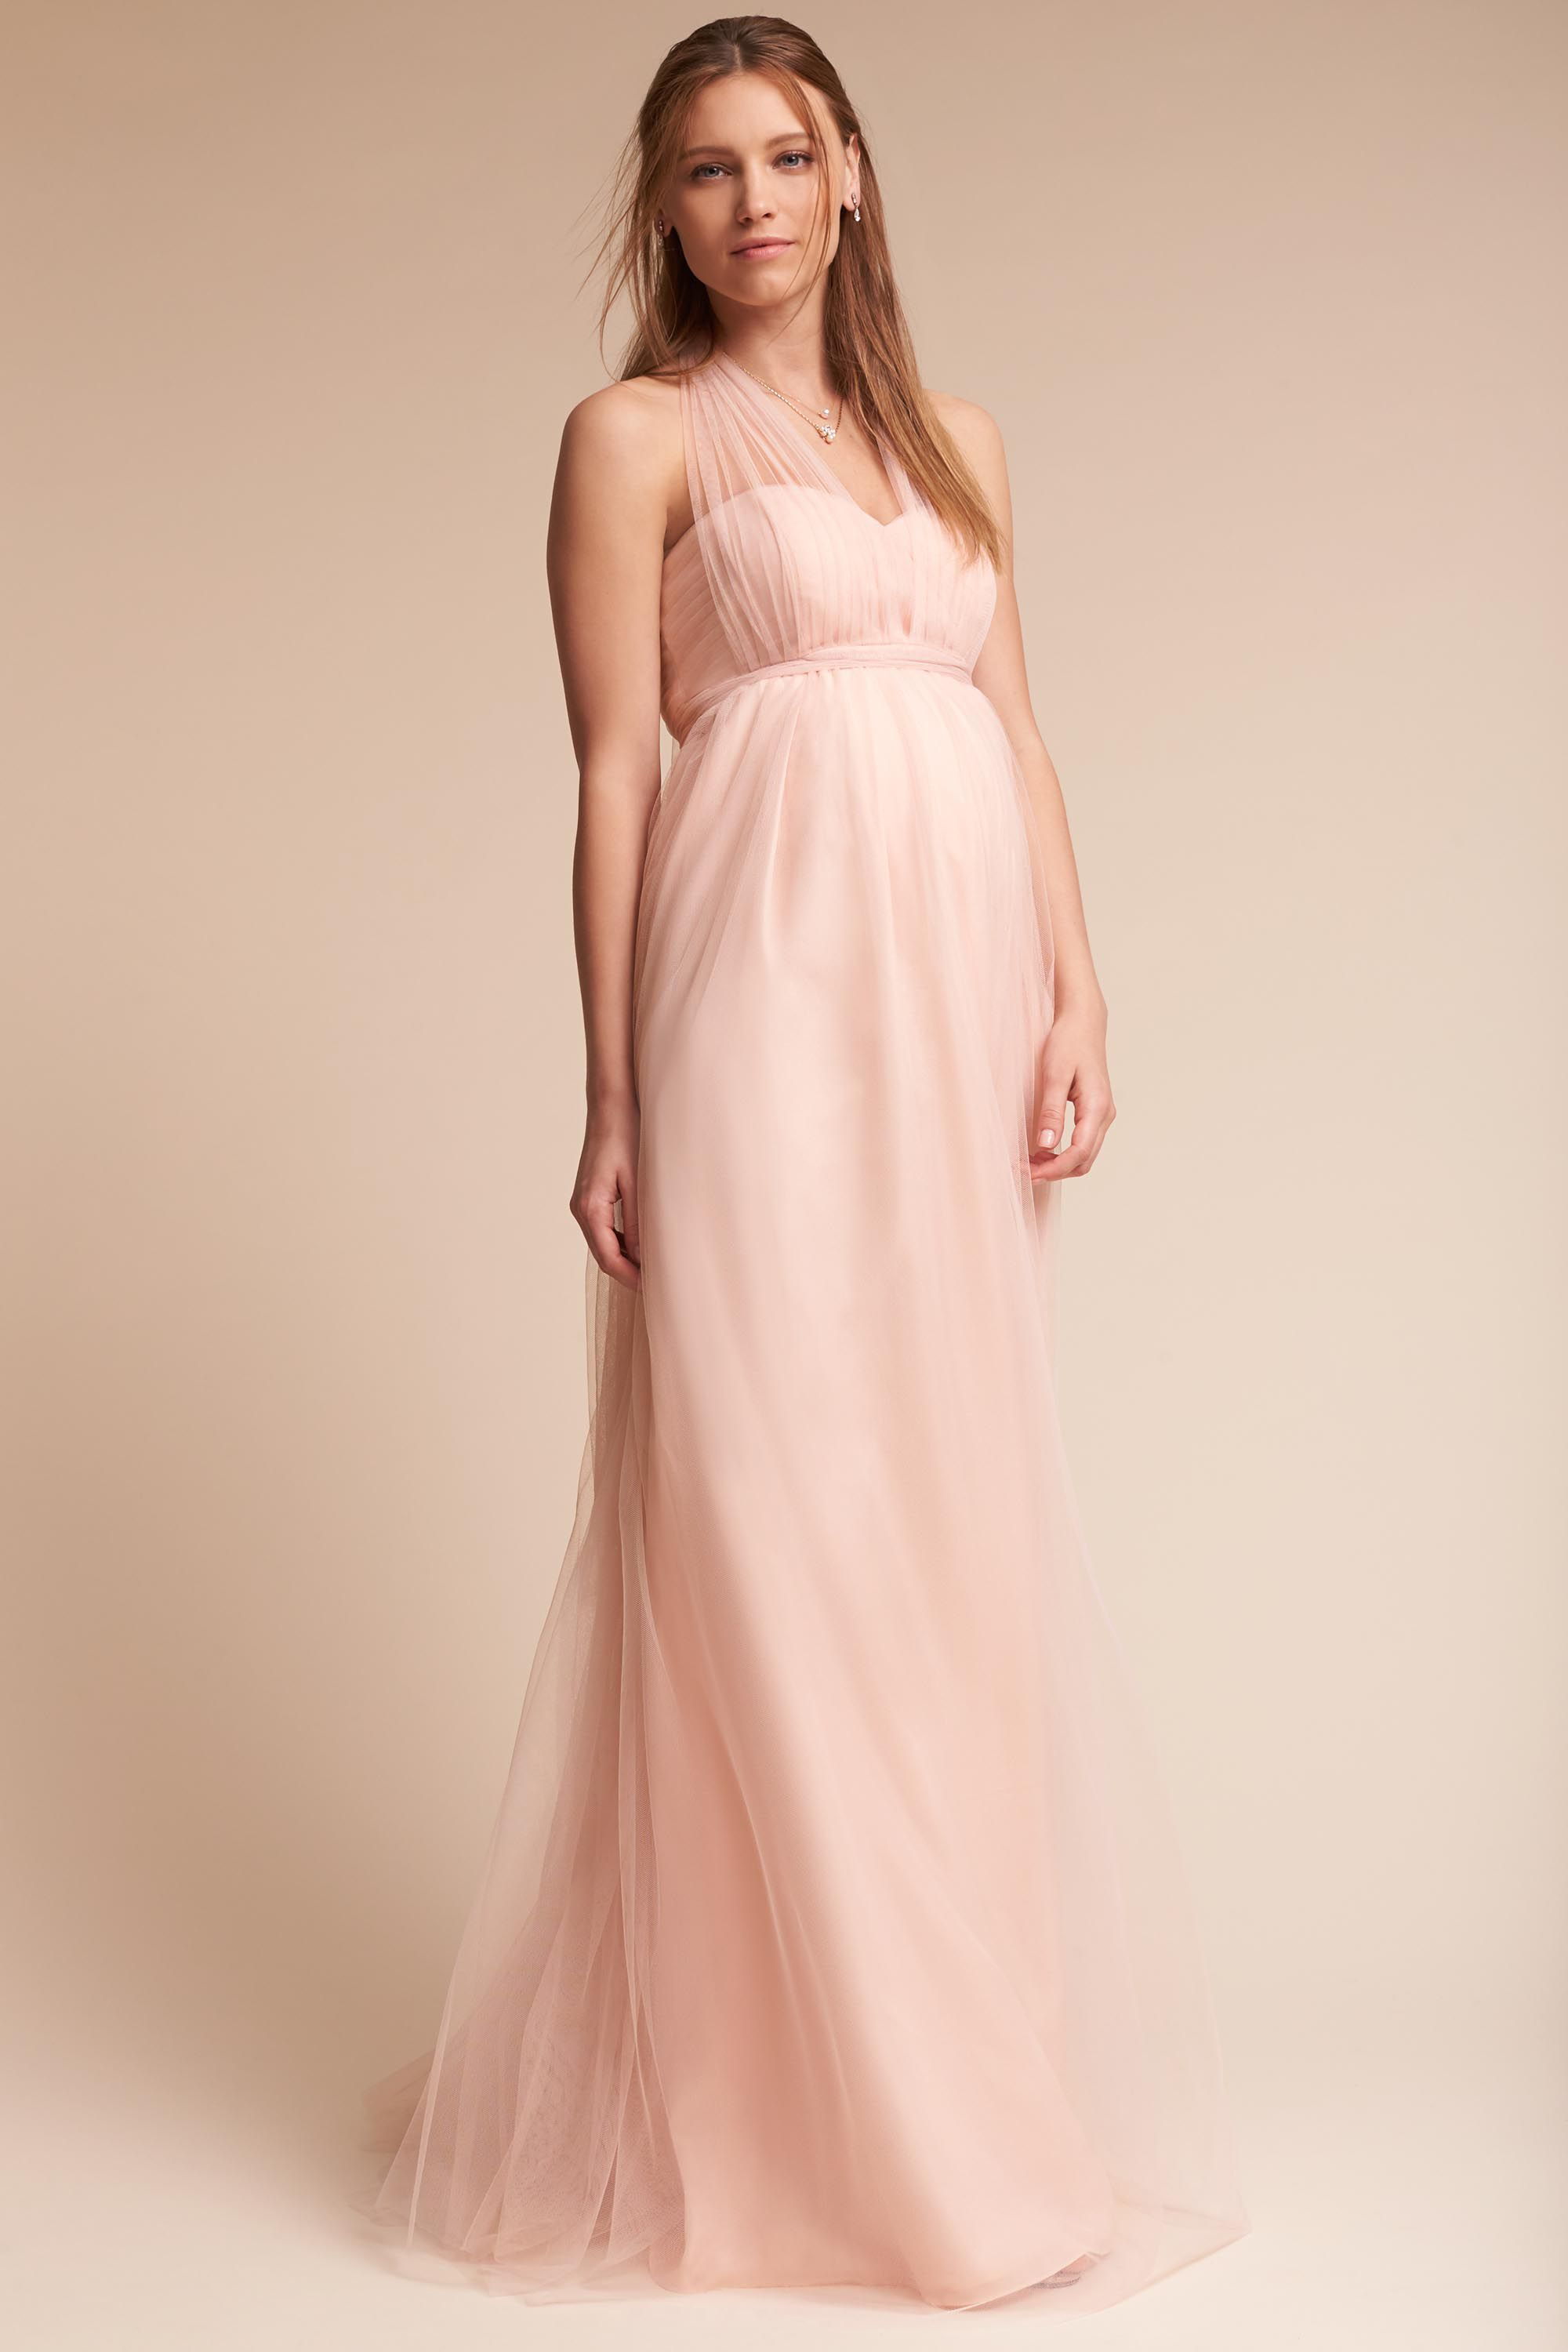 Serafina Maternity Dress